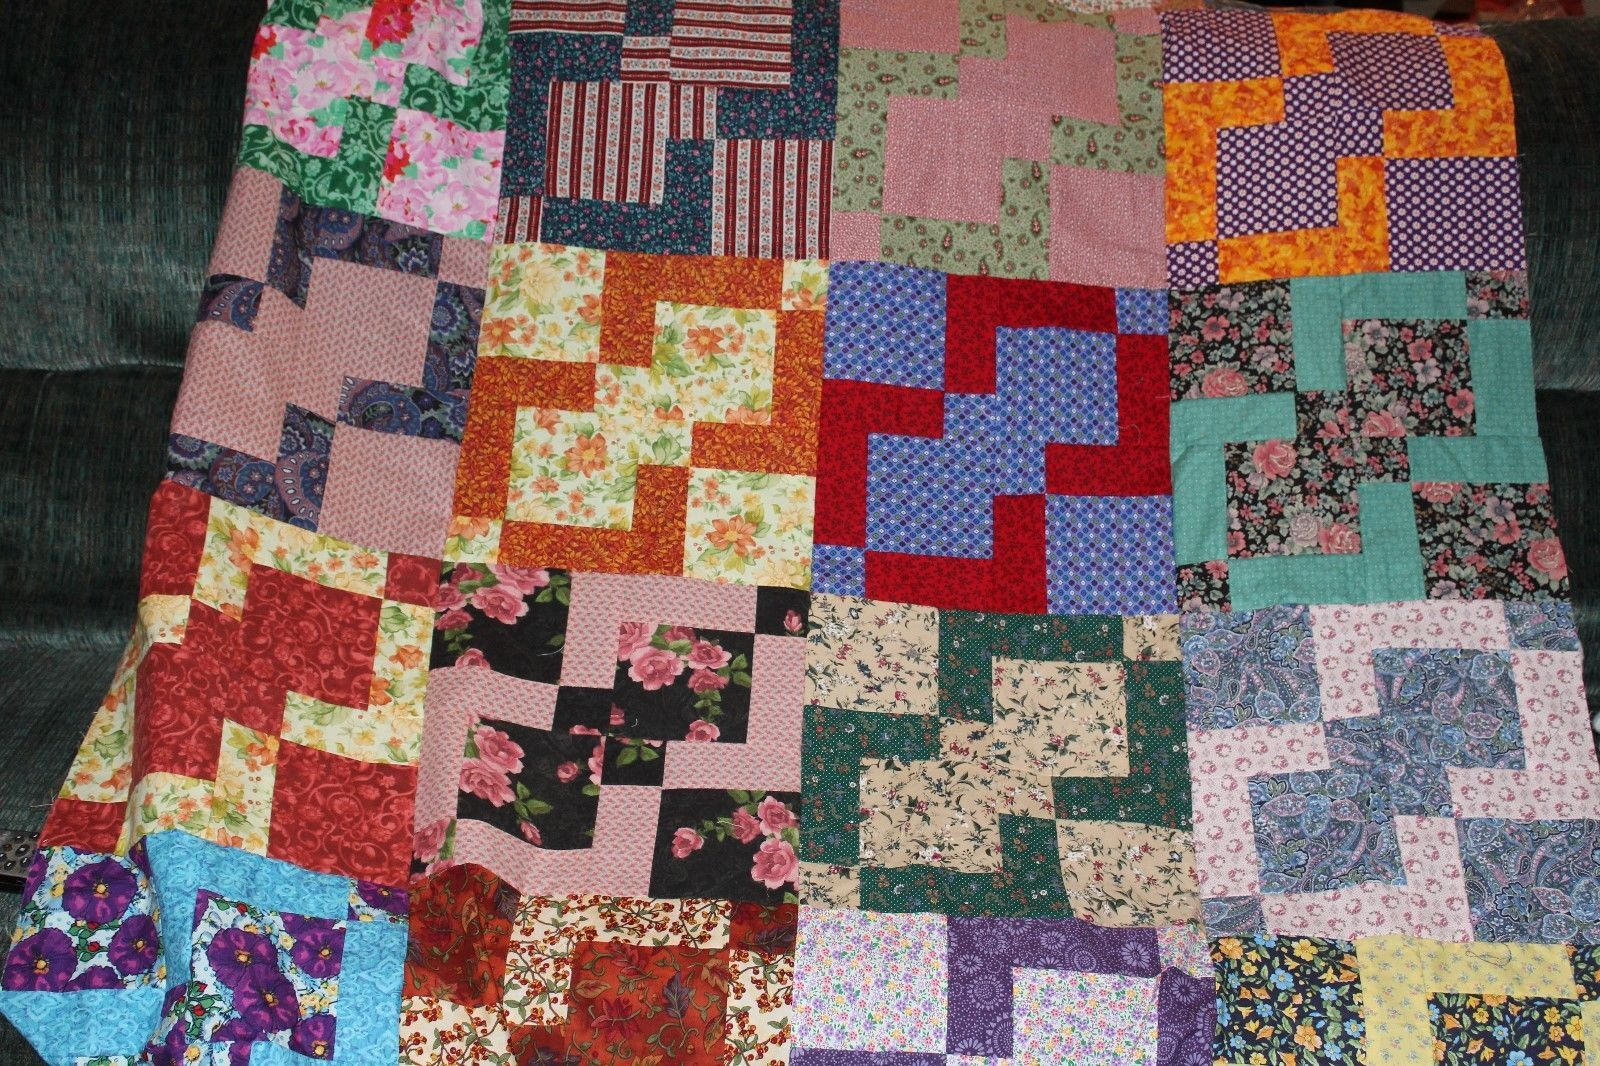 quilt handmade machine quilted all cotton queen size colorful 86 by 96 inches